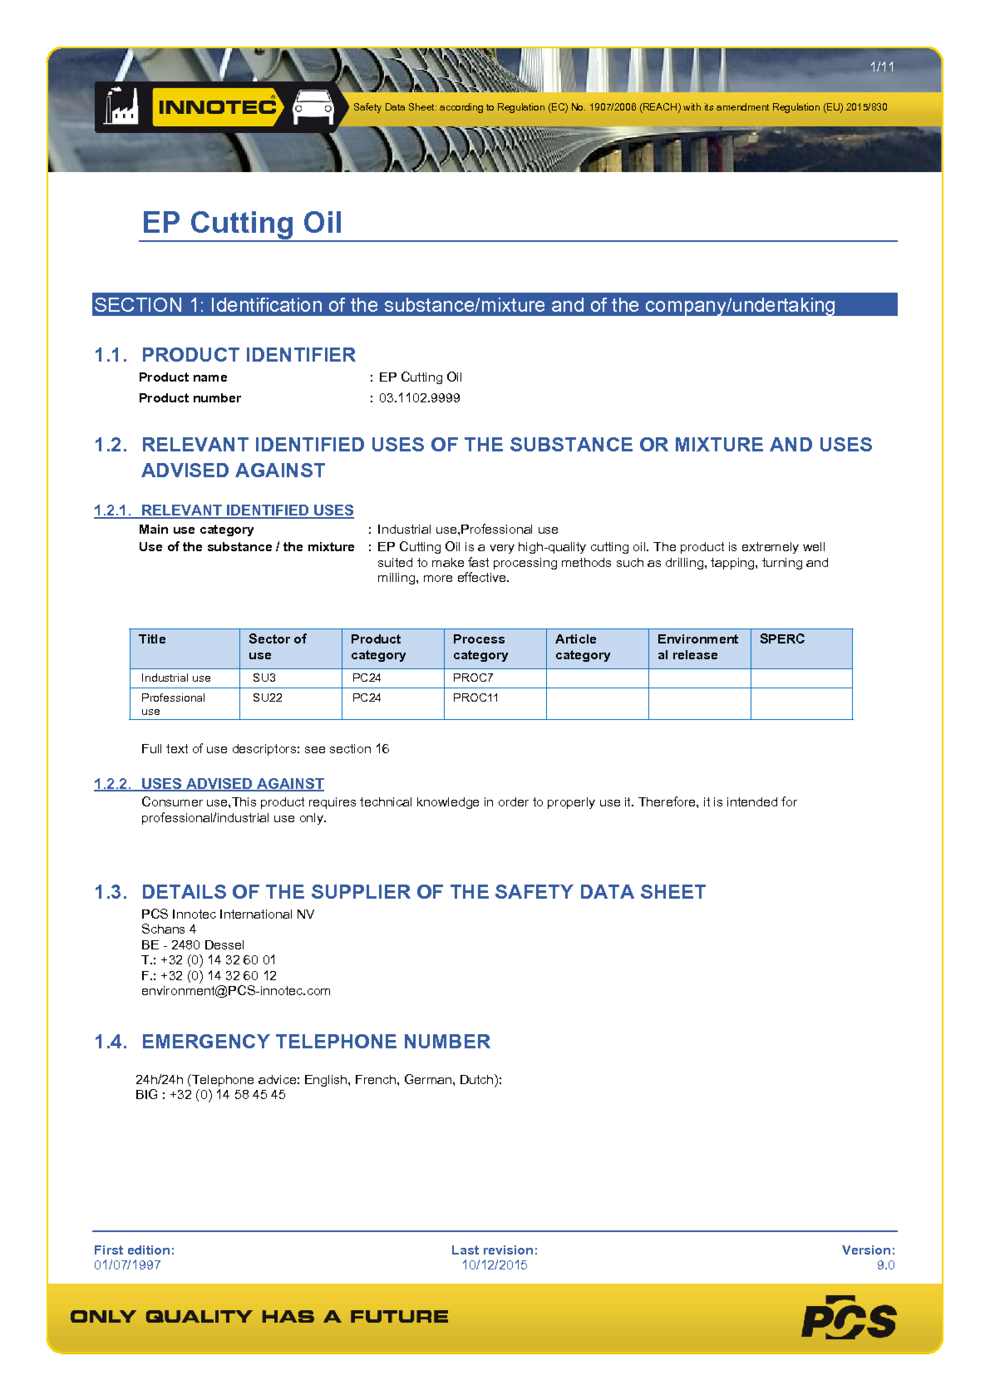 EP Cutting Oil MSDS Download